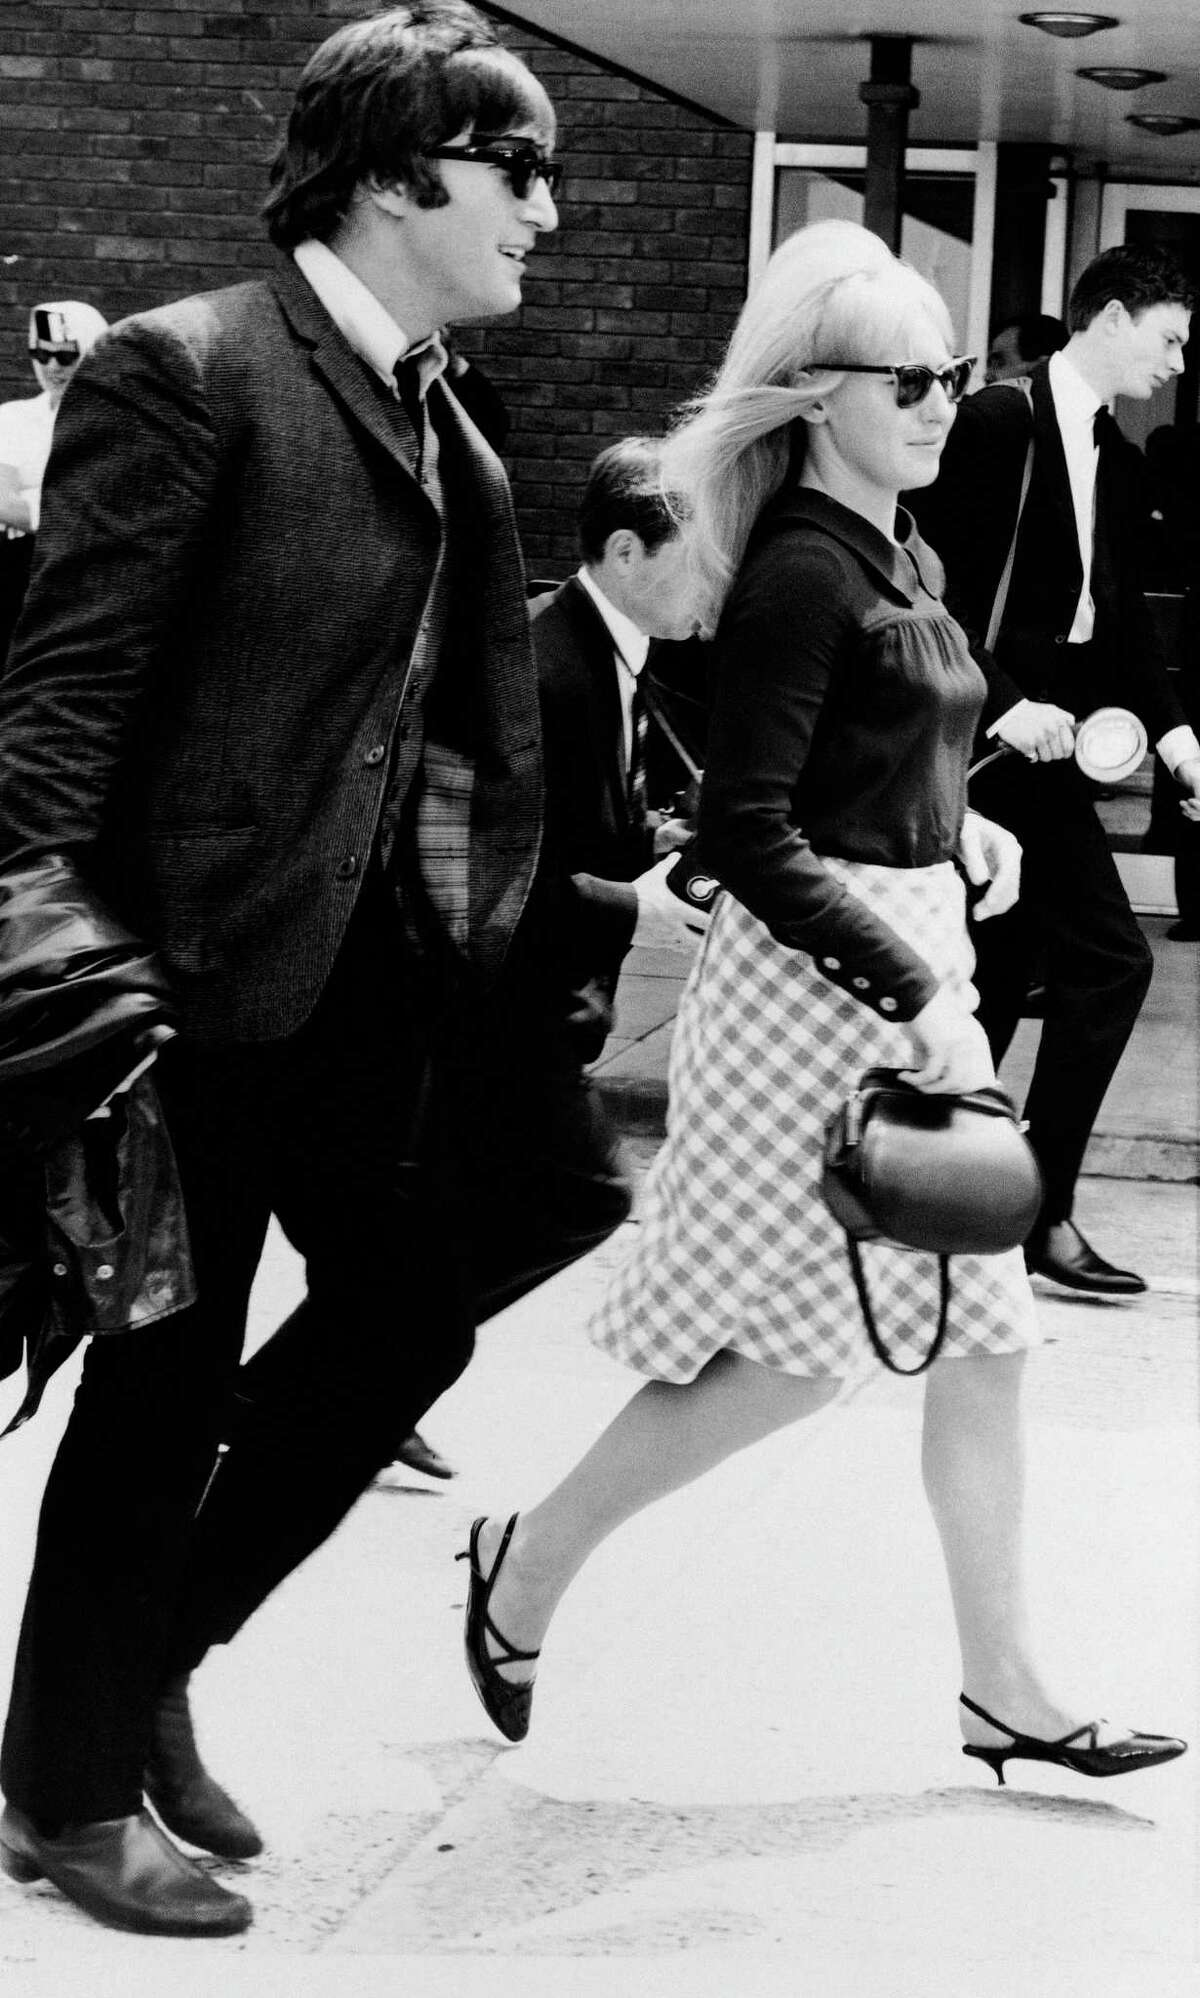 File- In this July 2,1964 file photo, singer John Lennon and his then wife, Cynthia, at Luton airport after 'The Beatles' arrived home from their three-week tour of Australia and New Zealand. Cynthia Lennon passed away on Thursday, April 1, 2015, aged 75, at her home in Mallorca, Spain, following a short but brave battle with cancer. (AP Photo/Victor Boynton, File)